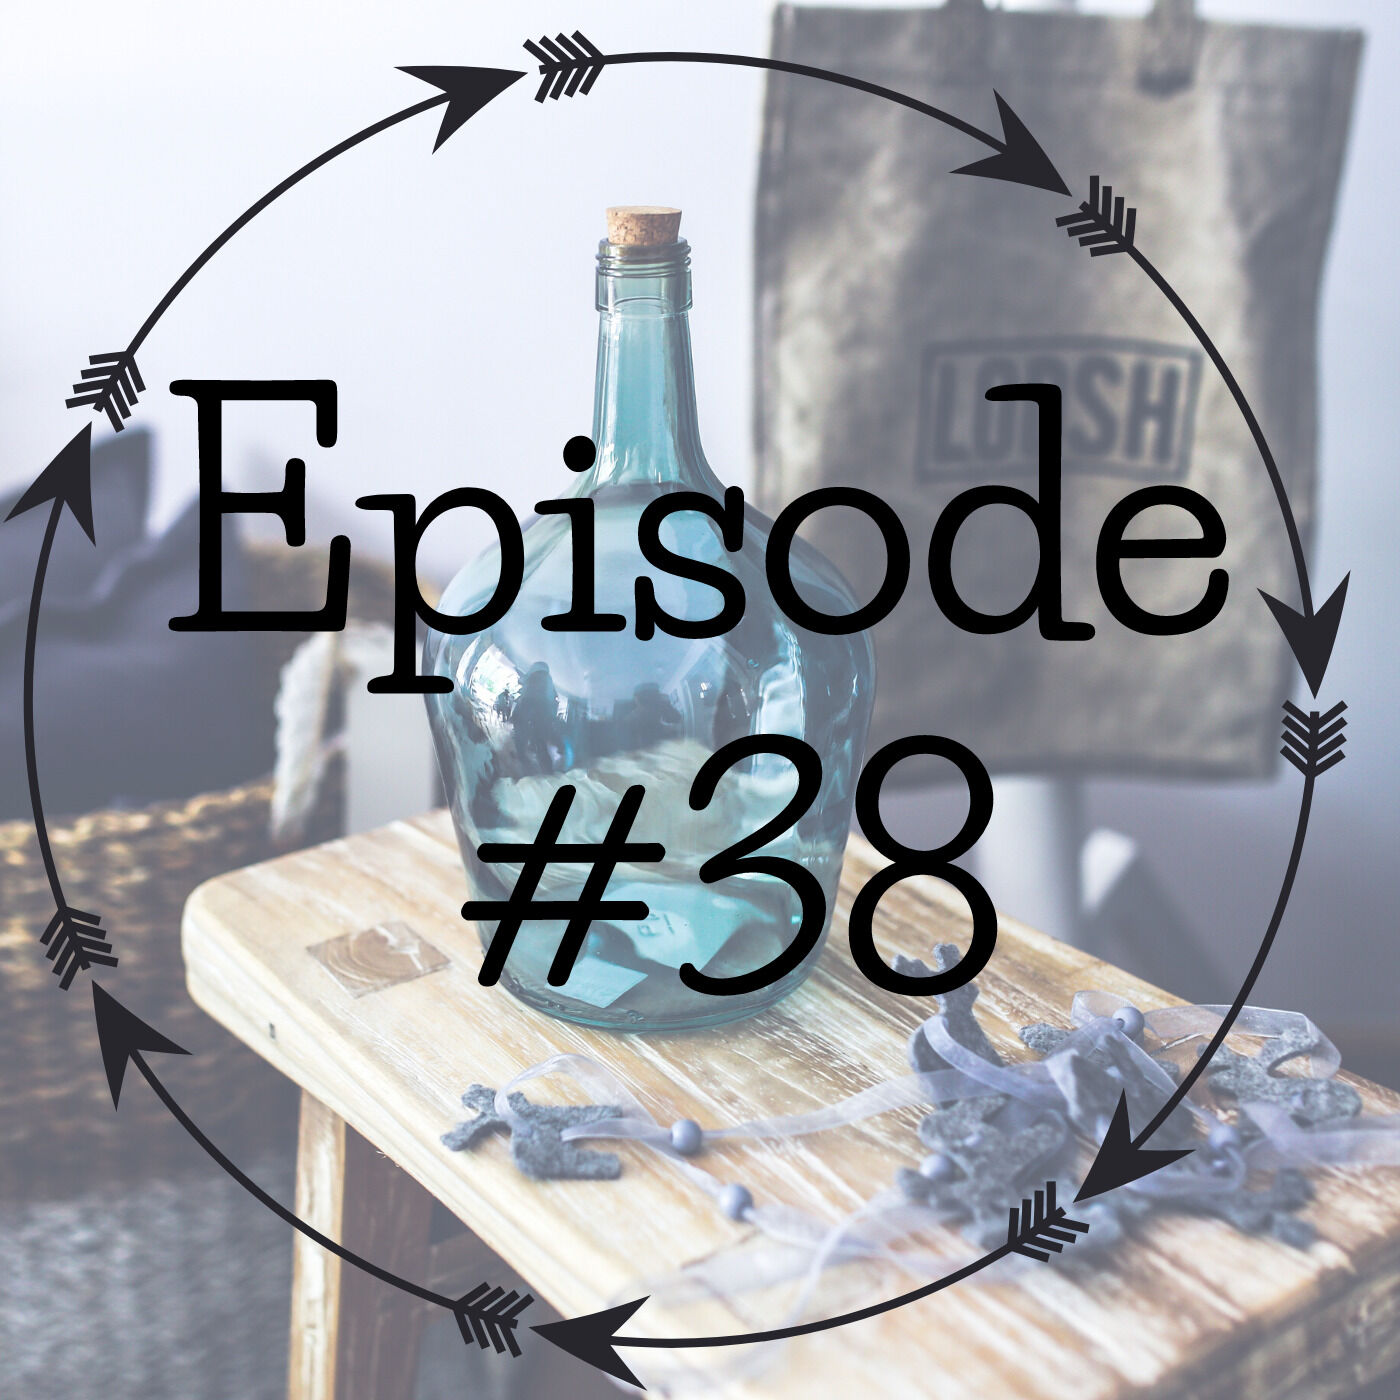 Episode #38: A dilemma about body image and what have we learnt so far from the Corona outbreak